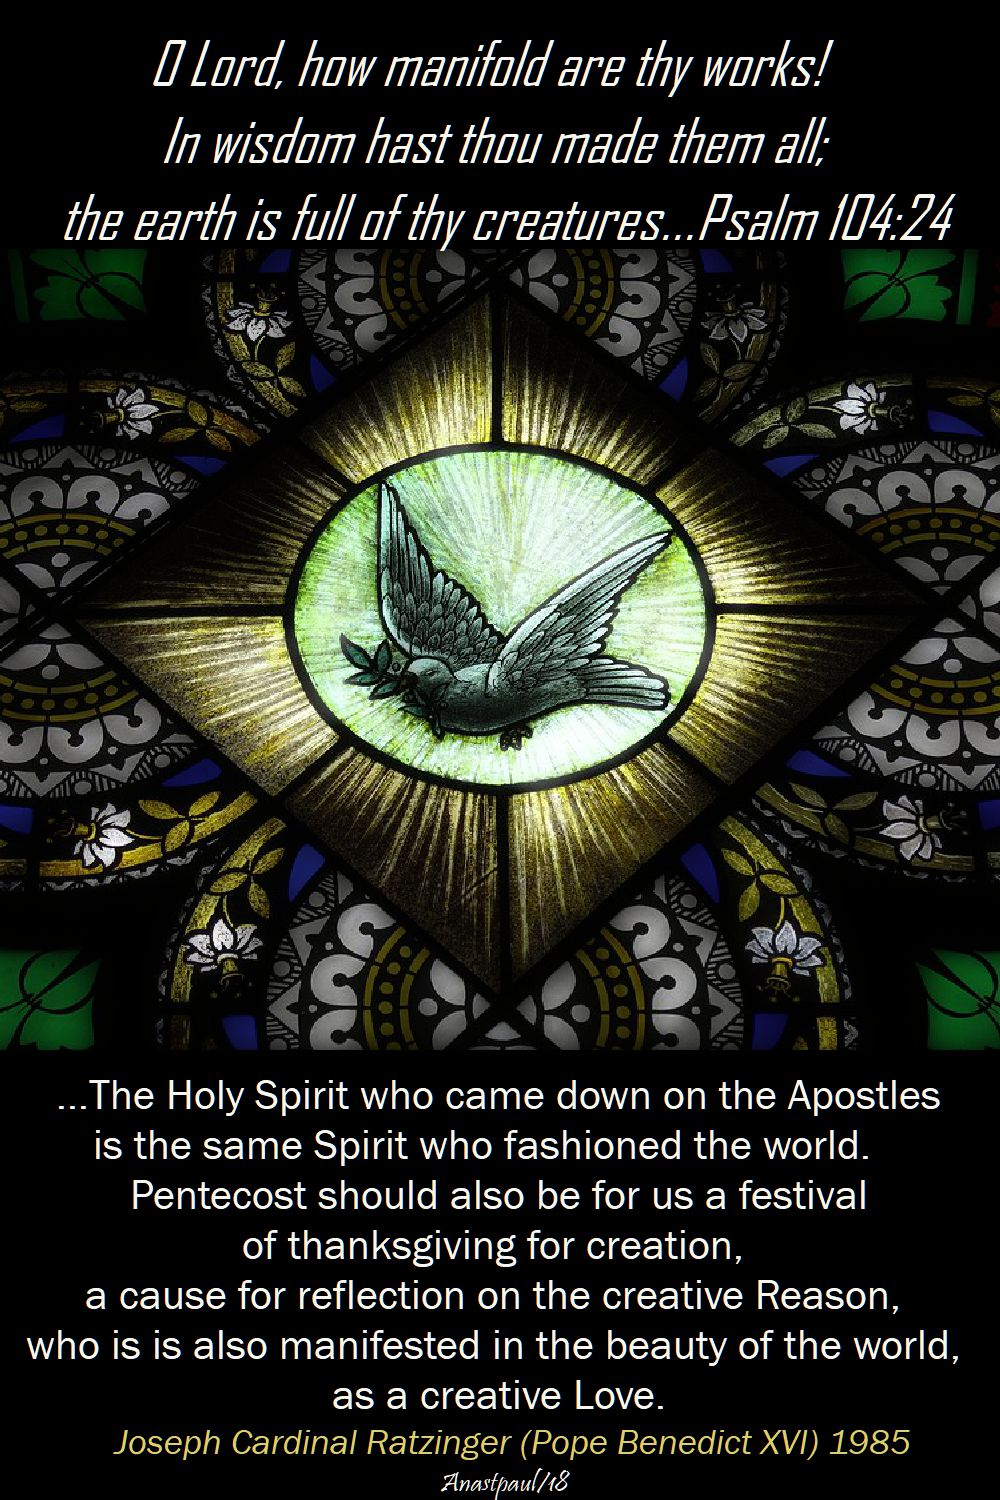 theholy spirit who came down on the apostles - pope benedict - 20 may 2018 and psalm 104 24